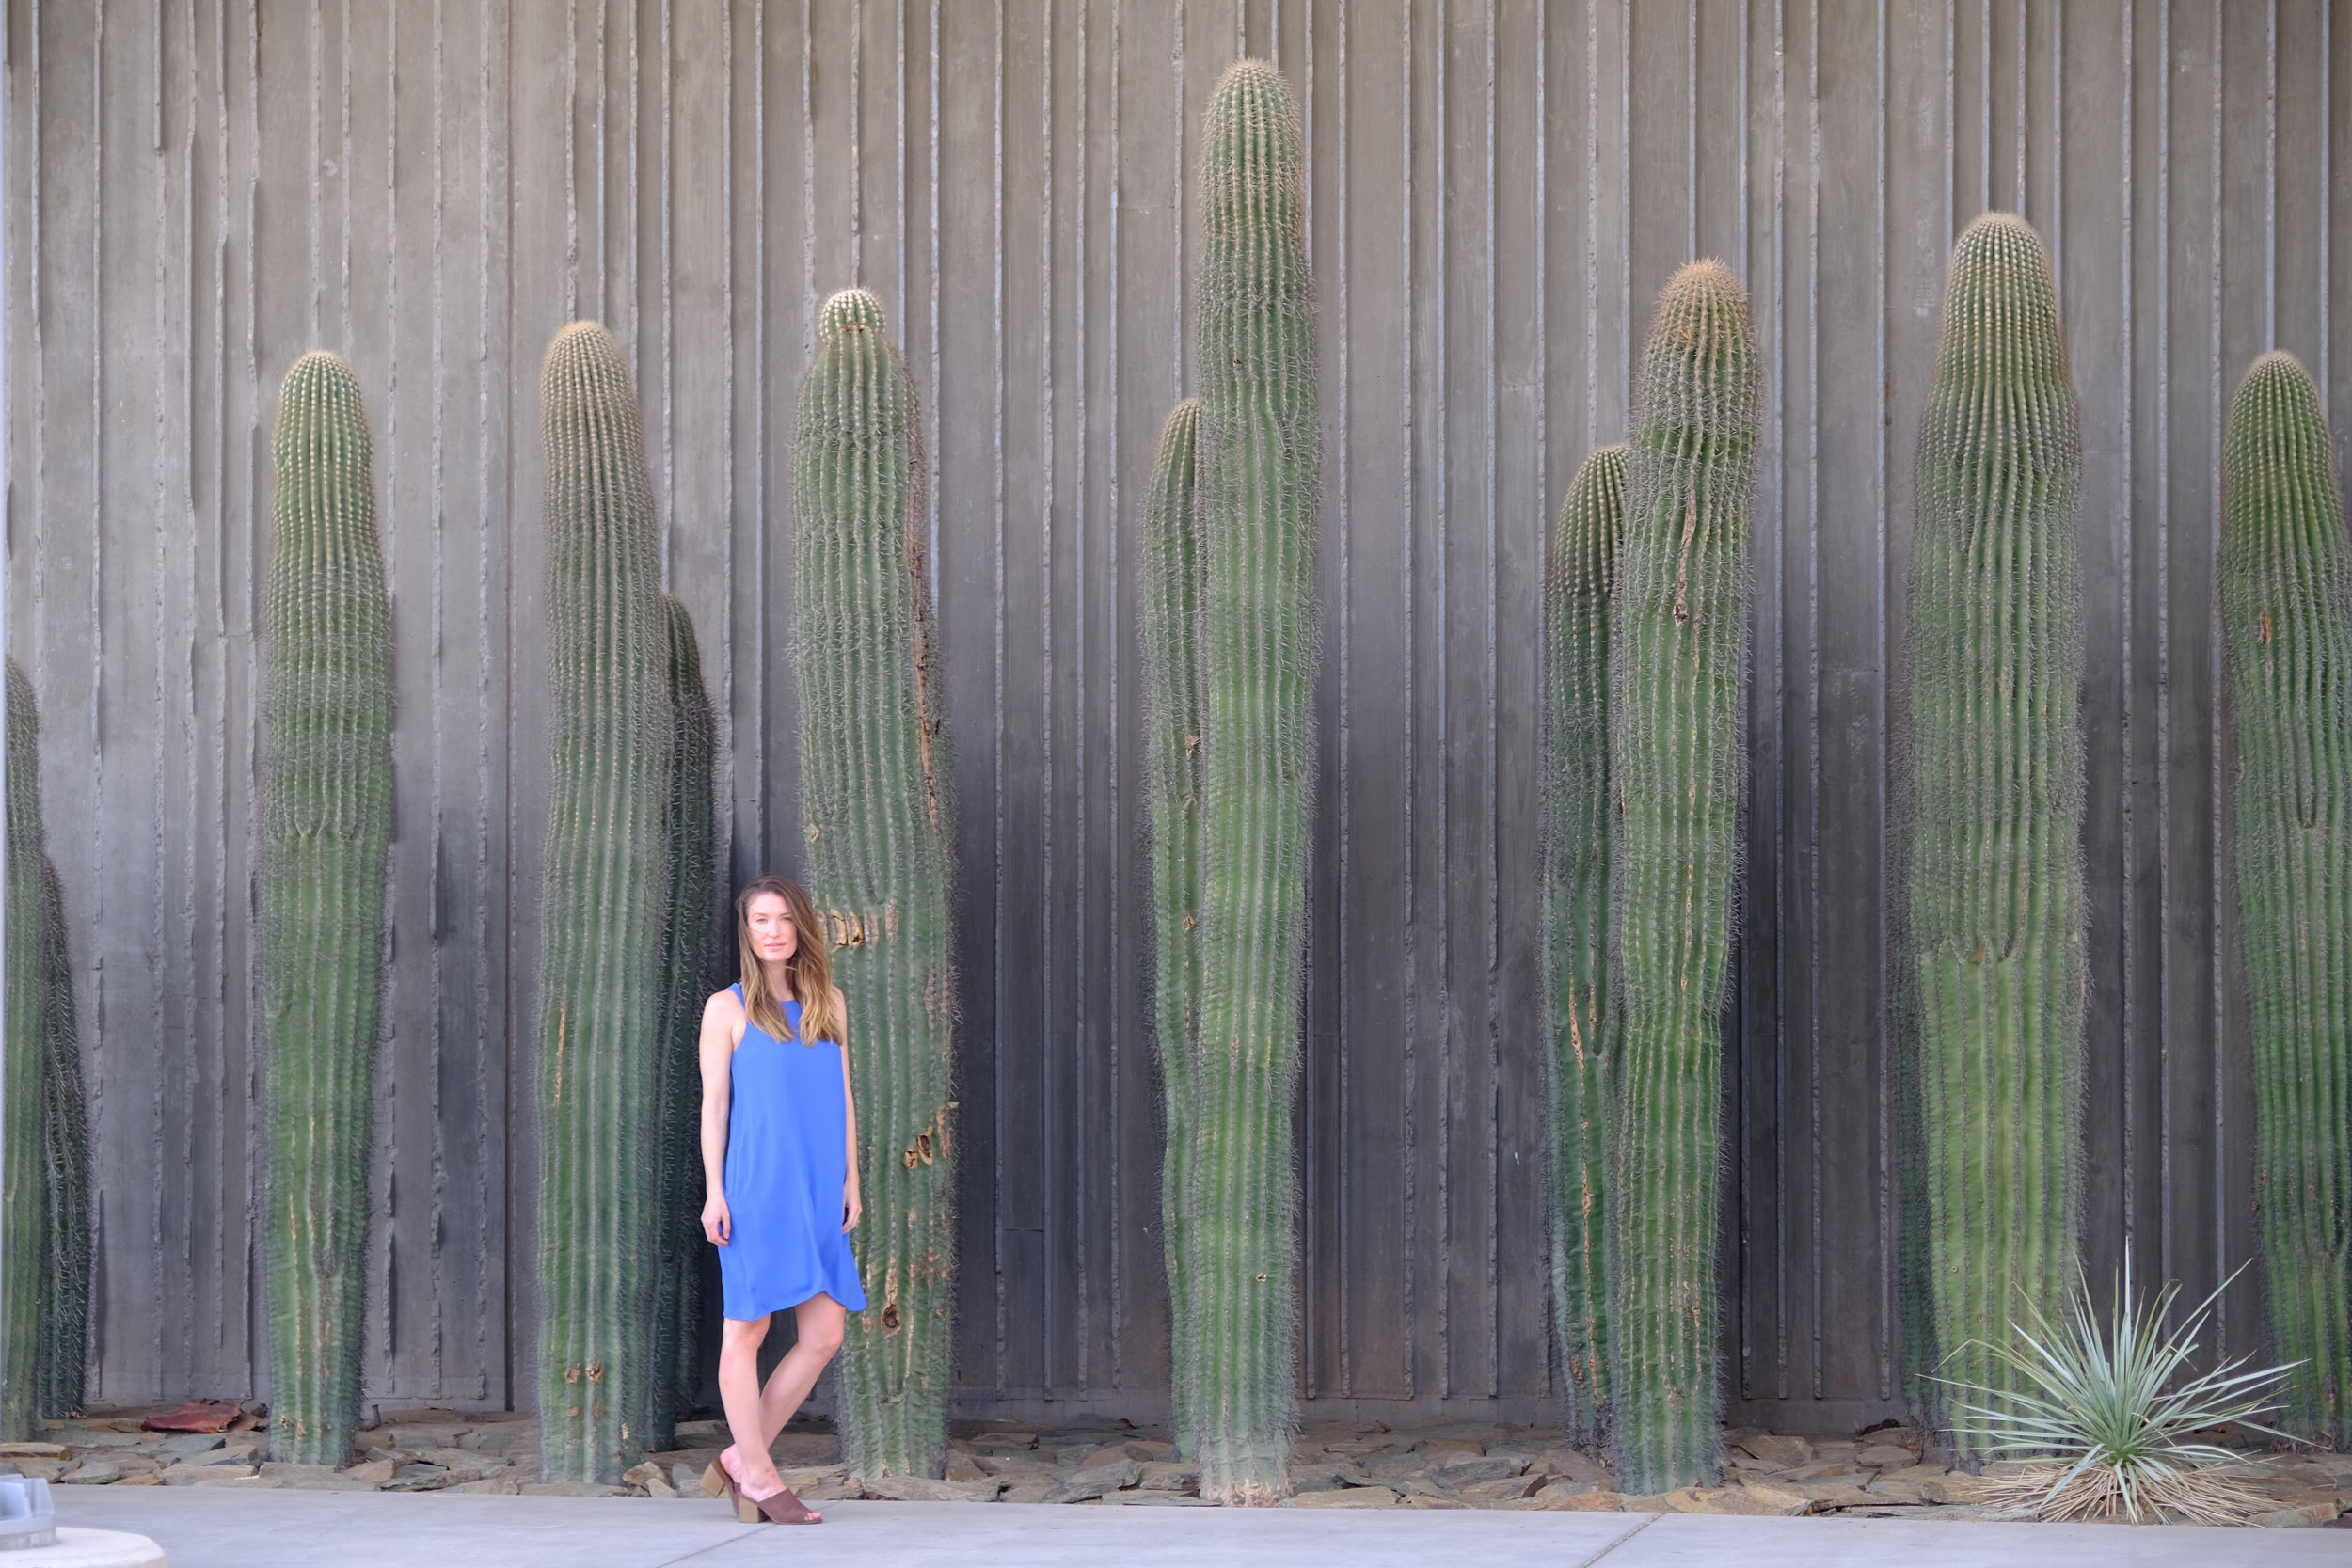 I could not get over these cactuses, I want them in my backyard but I'm not sure they'd thrive in the Bay Area. Also we don't have a back yard.